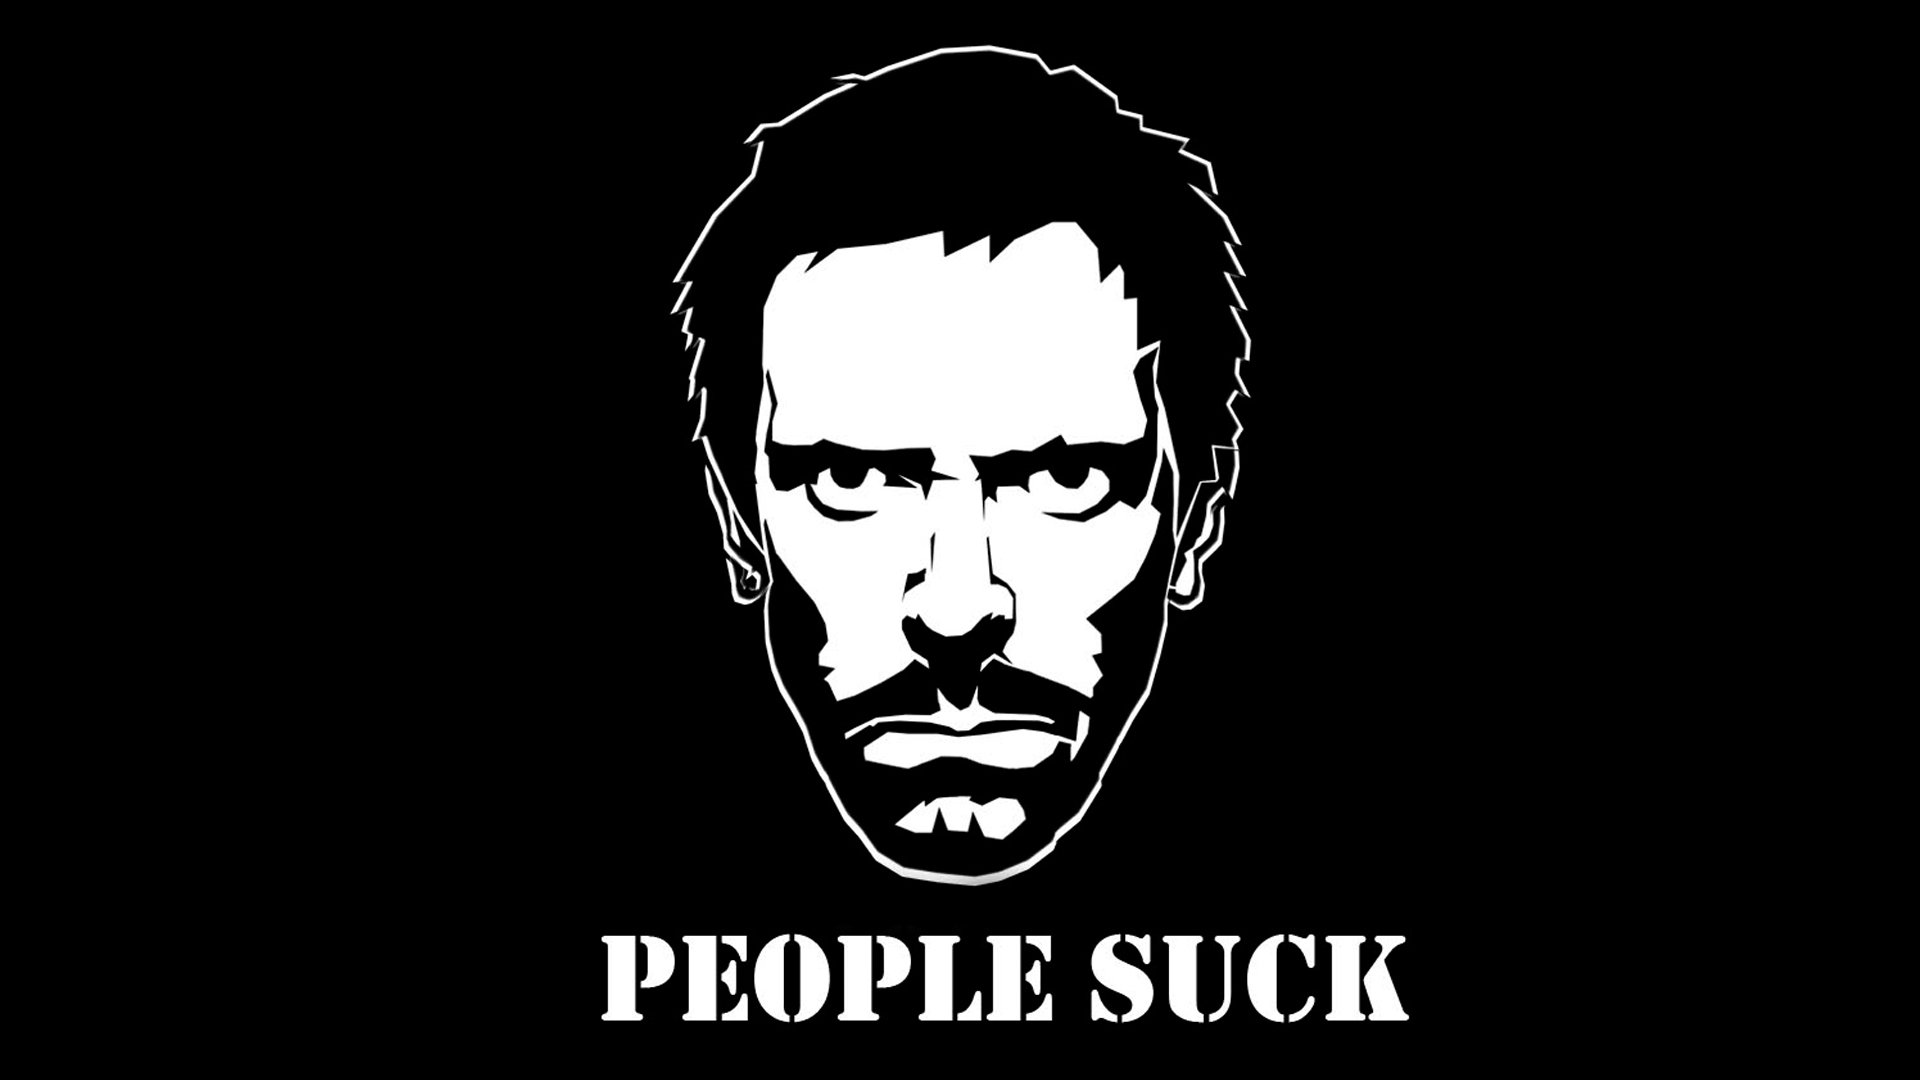 Quotes Gregory House House M D wallpaper x